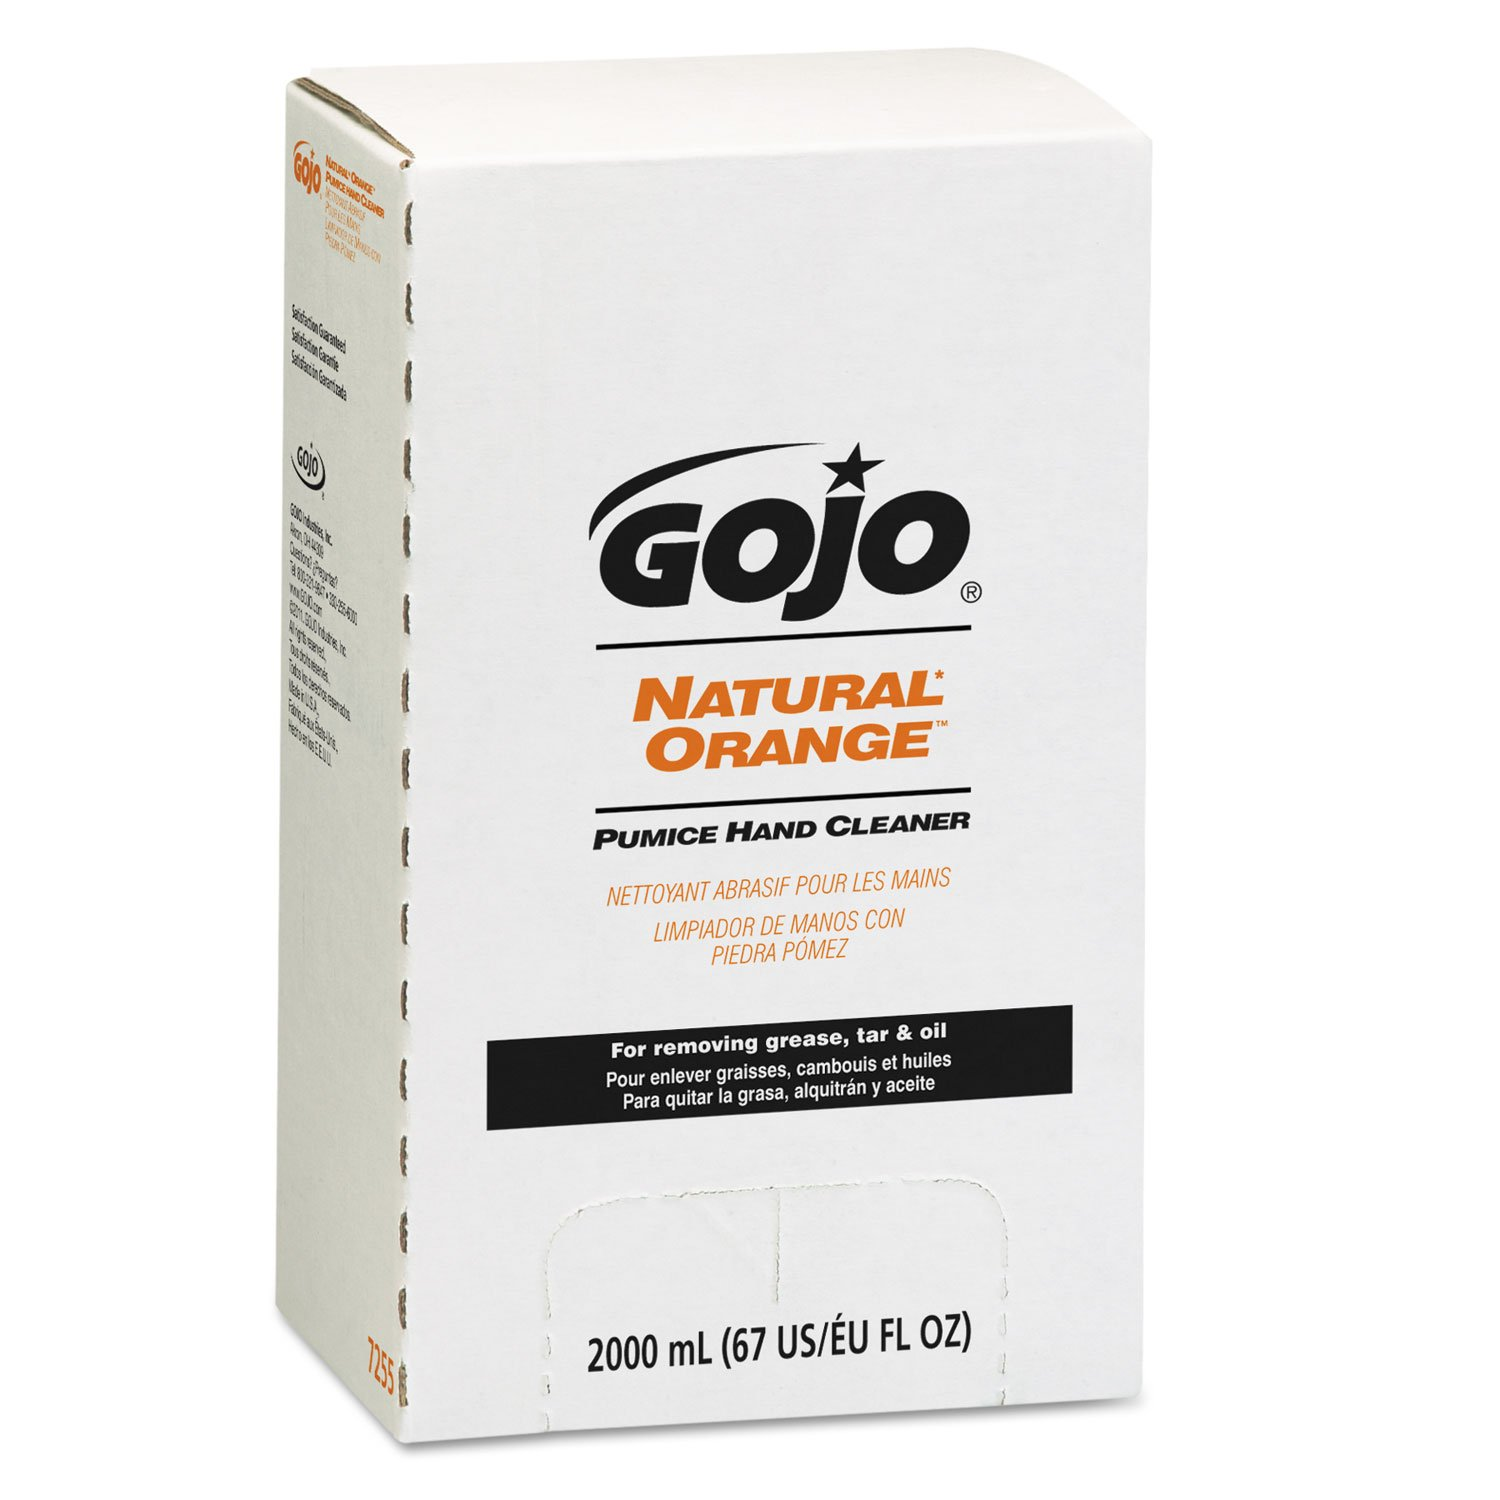 GOJO 7255 NATURAL ORANGE Pumice Hand Cleaner Refill, Citrus Scent, 2000mL, 4/Carton